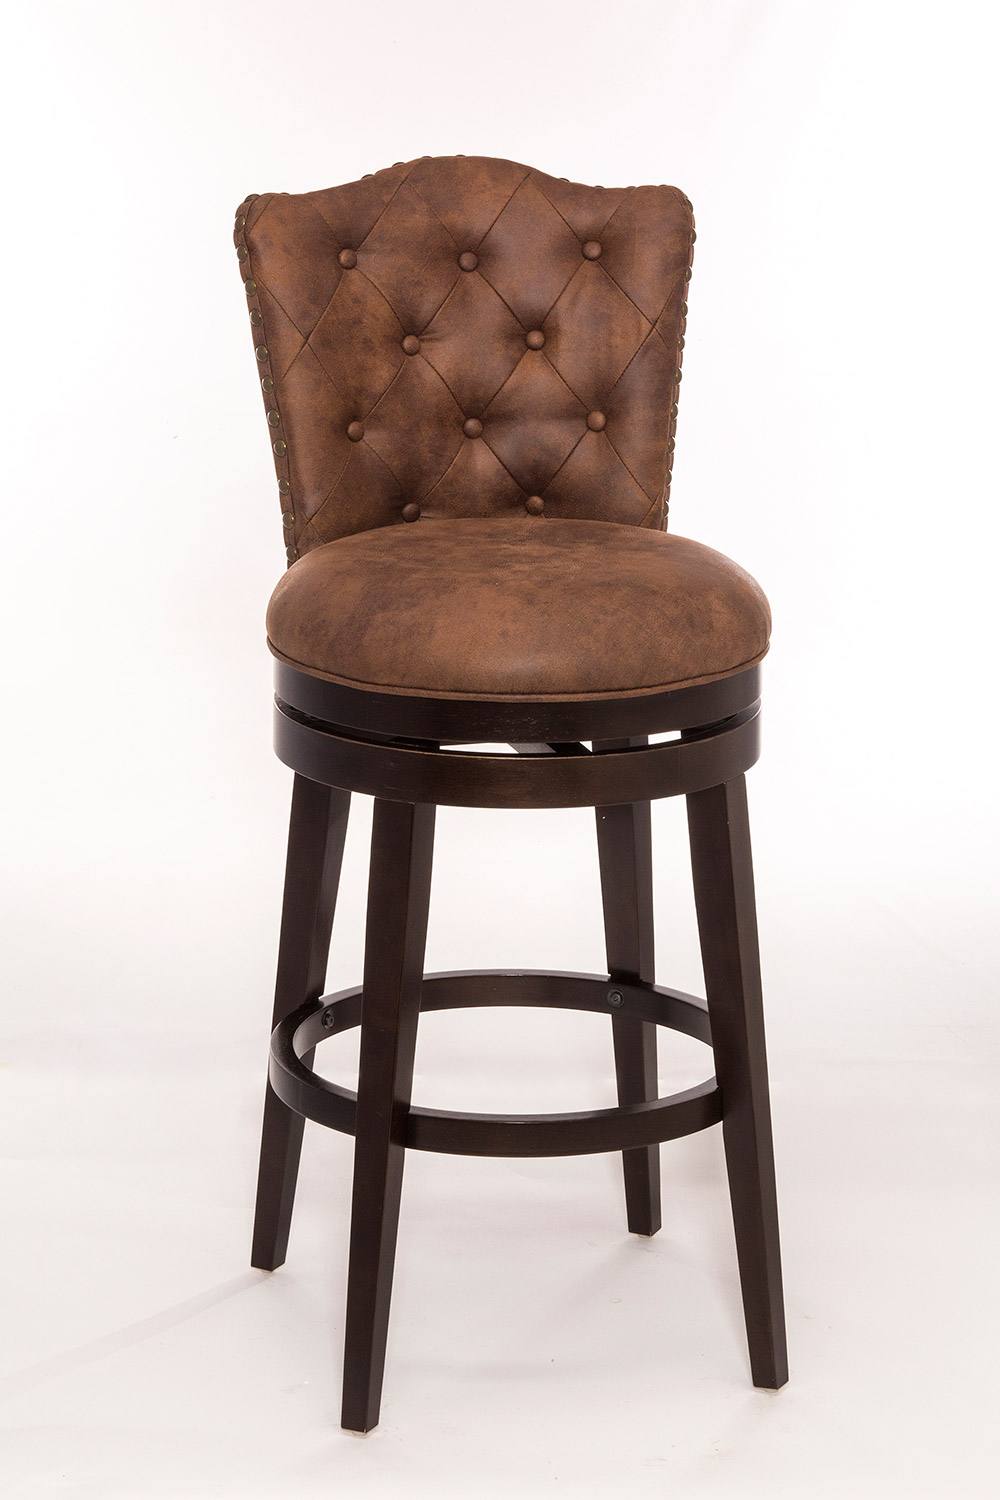 Hillsdale Edenwood Swivel Counter Stool Chocolate HD  : HD 5945 826 from www.homelement.com size 1000 x 1500 jpeg 165kB